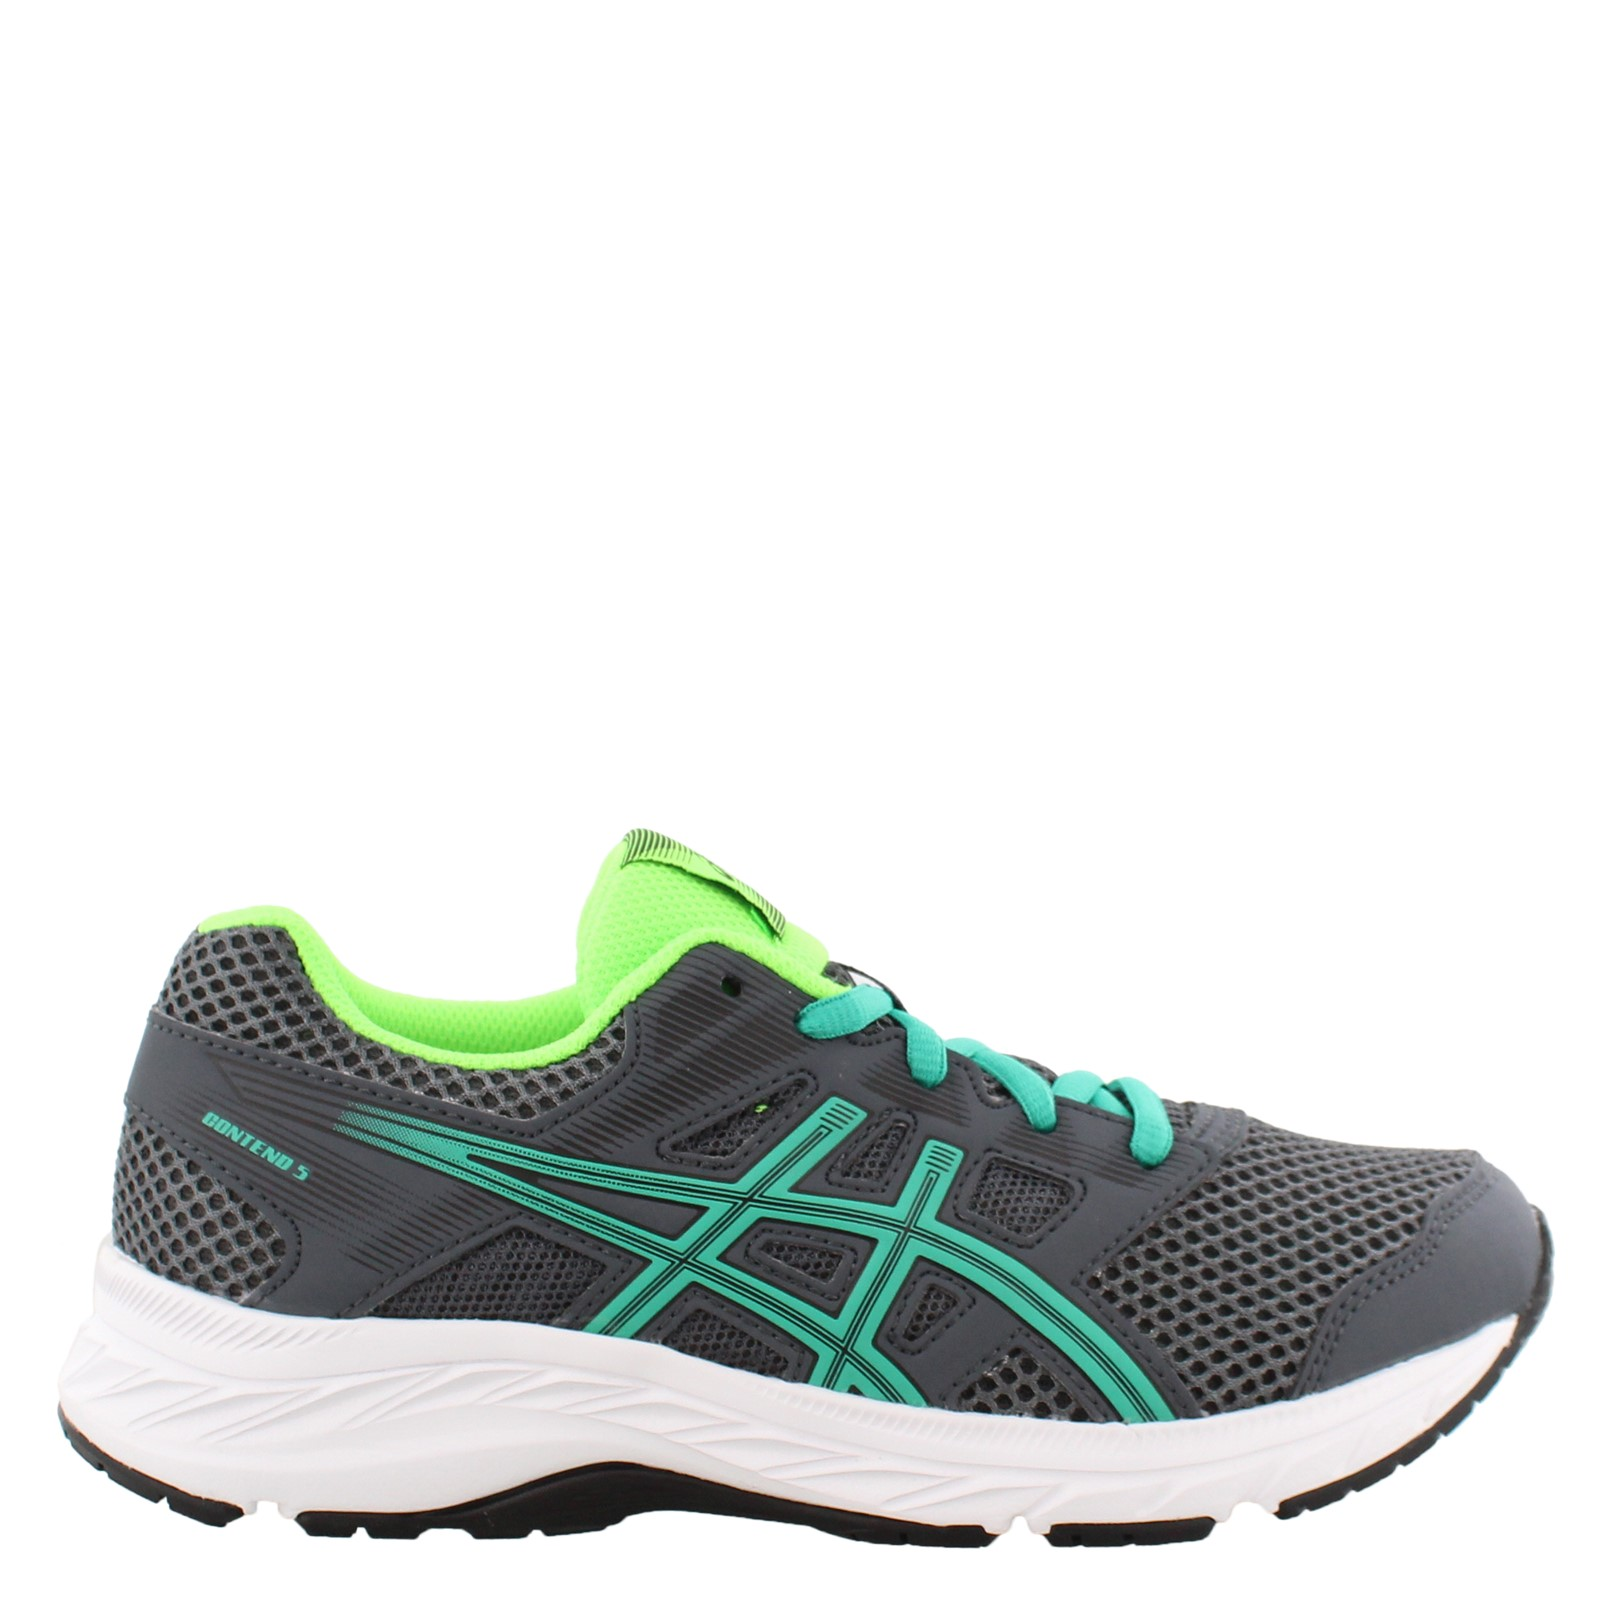 Boy's Asics, Gel Contend 5 GS Running Sneaker - Big Kid